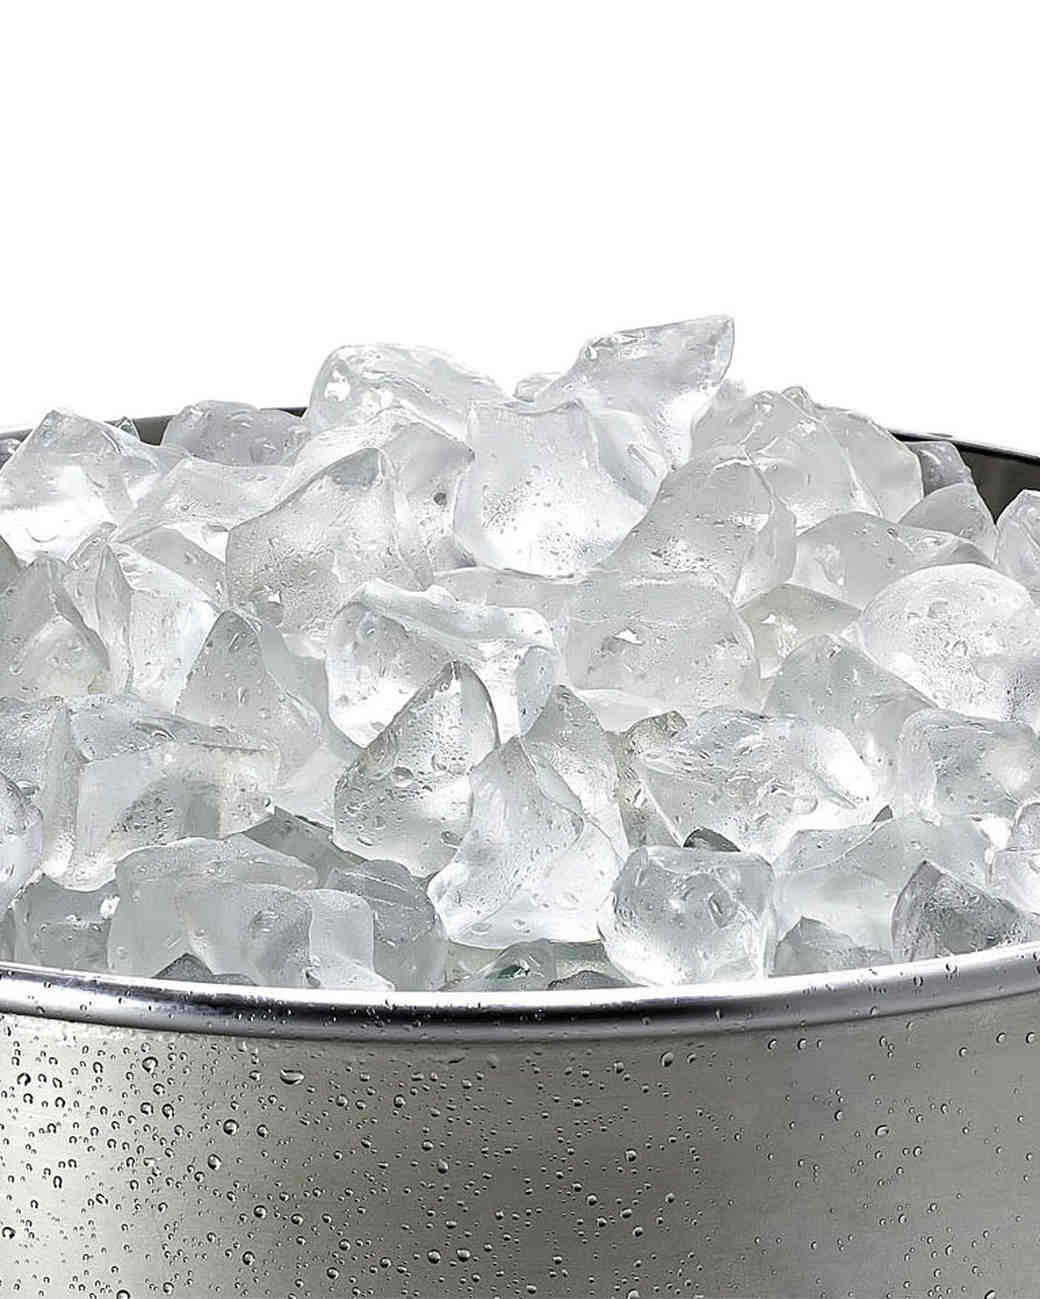 ice cup